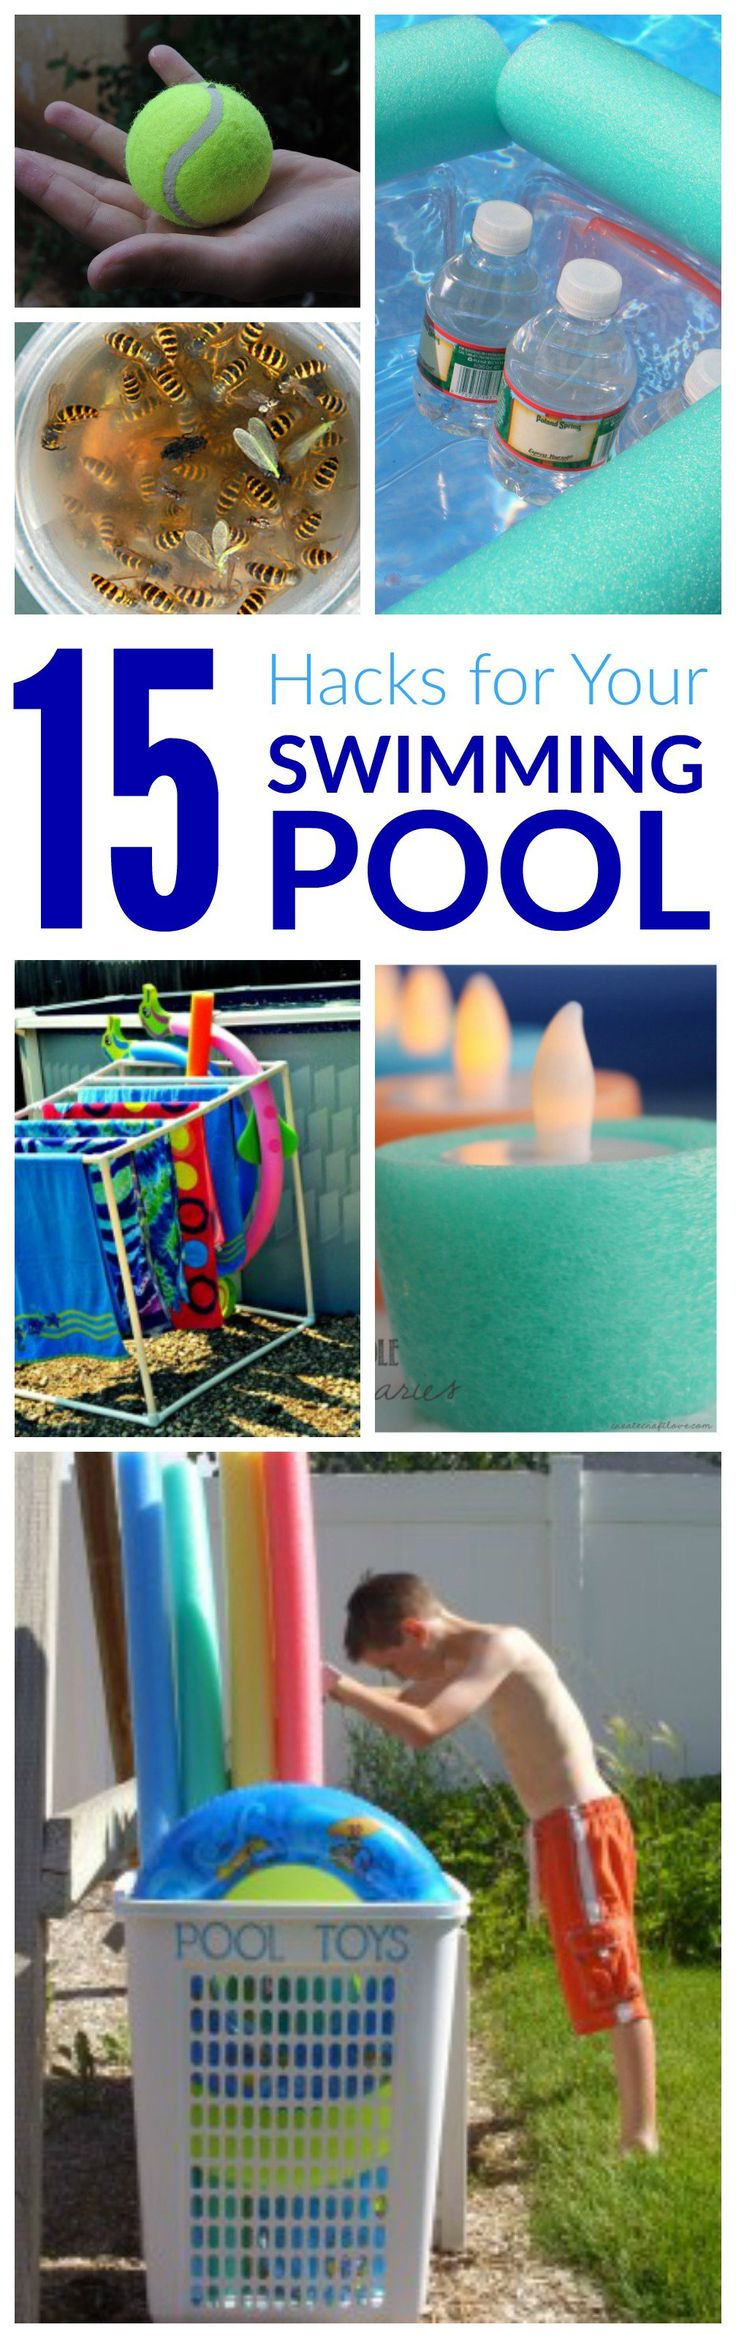 15 Swimming Pool Hacks for Summer! Fun in the Sun with Kids with these games and activities!